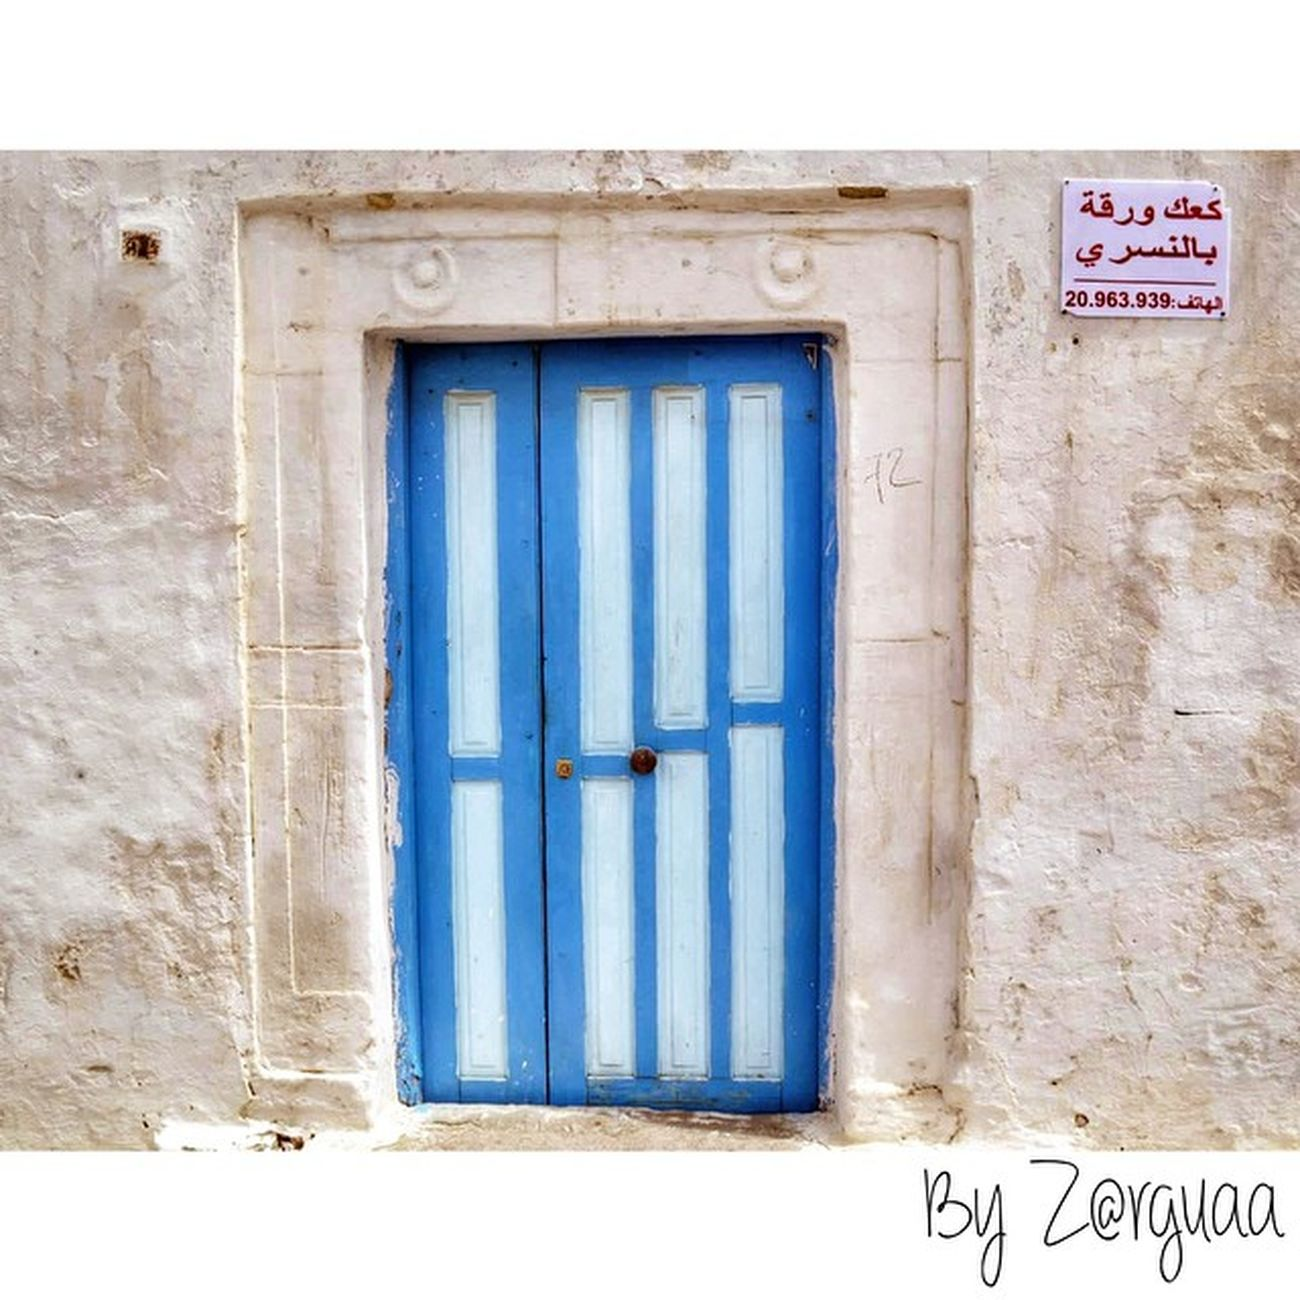 Beautiful Amazing Tunisia Followme Follow All_shots Bestoftheday Igers IGDaily Tweegram Instadaily Instalike Tunisie Instalovers Ig_worldclub Instasize Ilovetunisia Idreamoftunisia Exklusive_shot Instagramtn IgersTunisia Igerstn Tnshots By_Zarguaa Zagwen Etunisie Tnigers Loves_tunisia